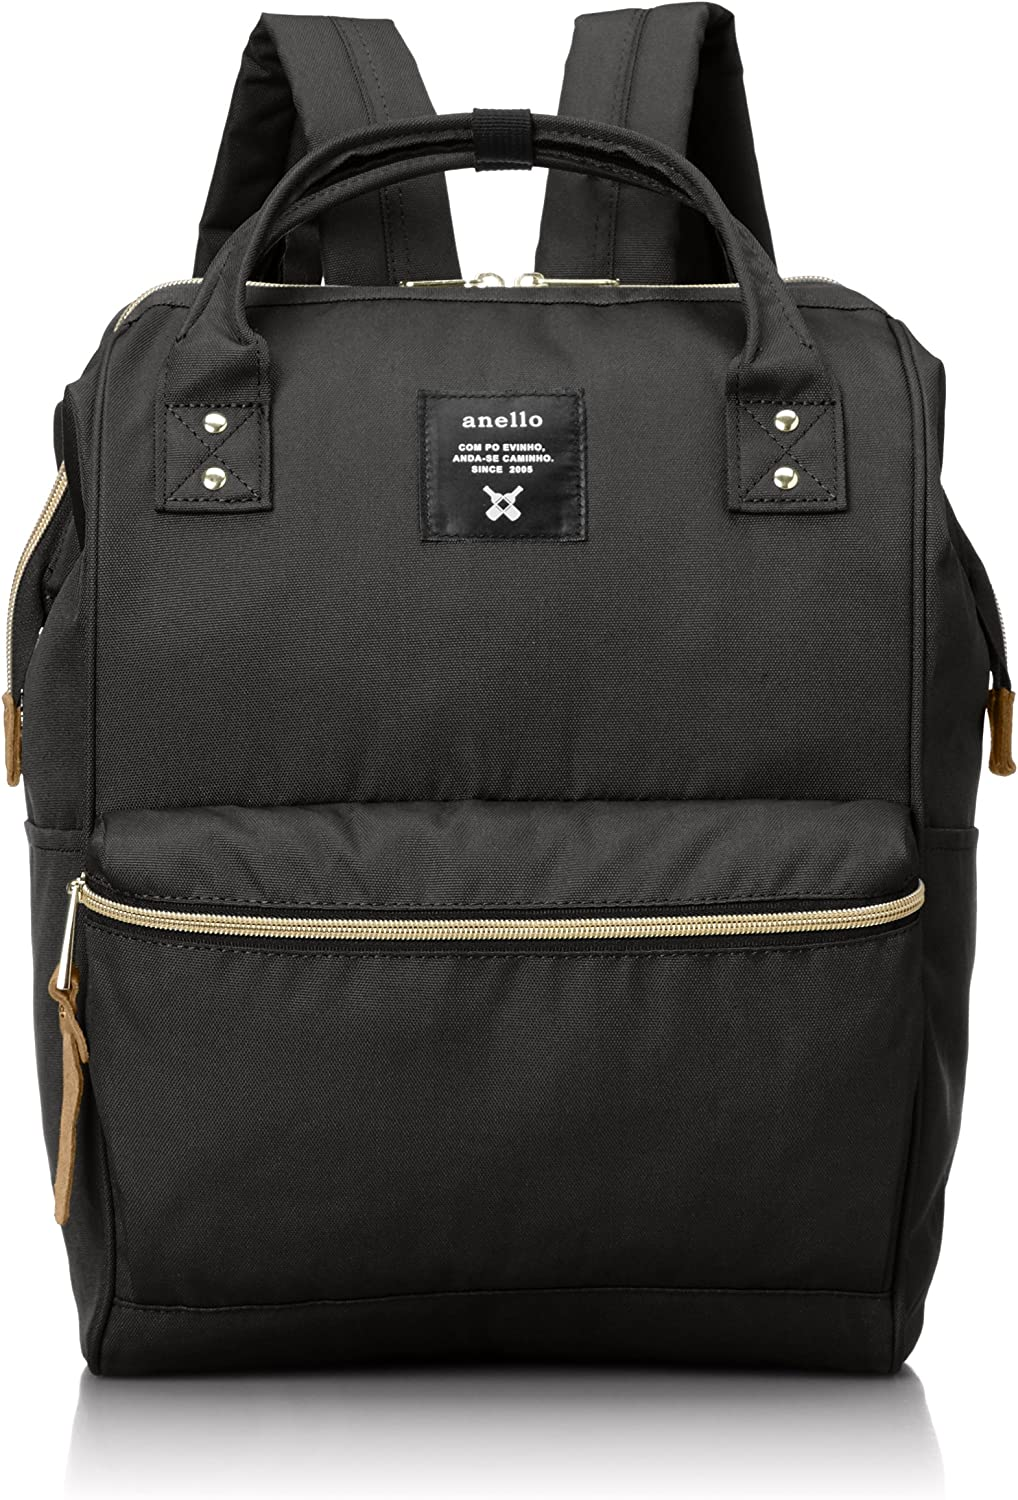 anello AT-B0193A backpack black Large Size